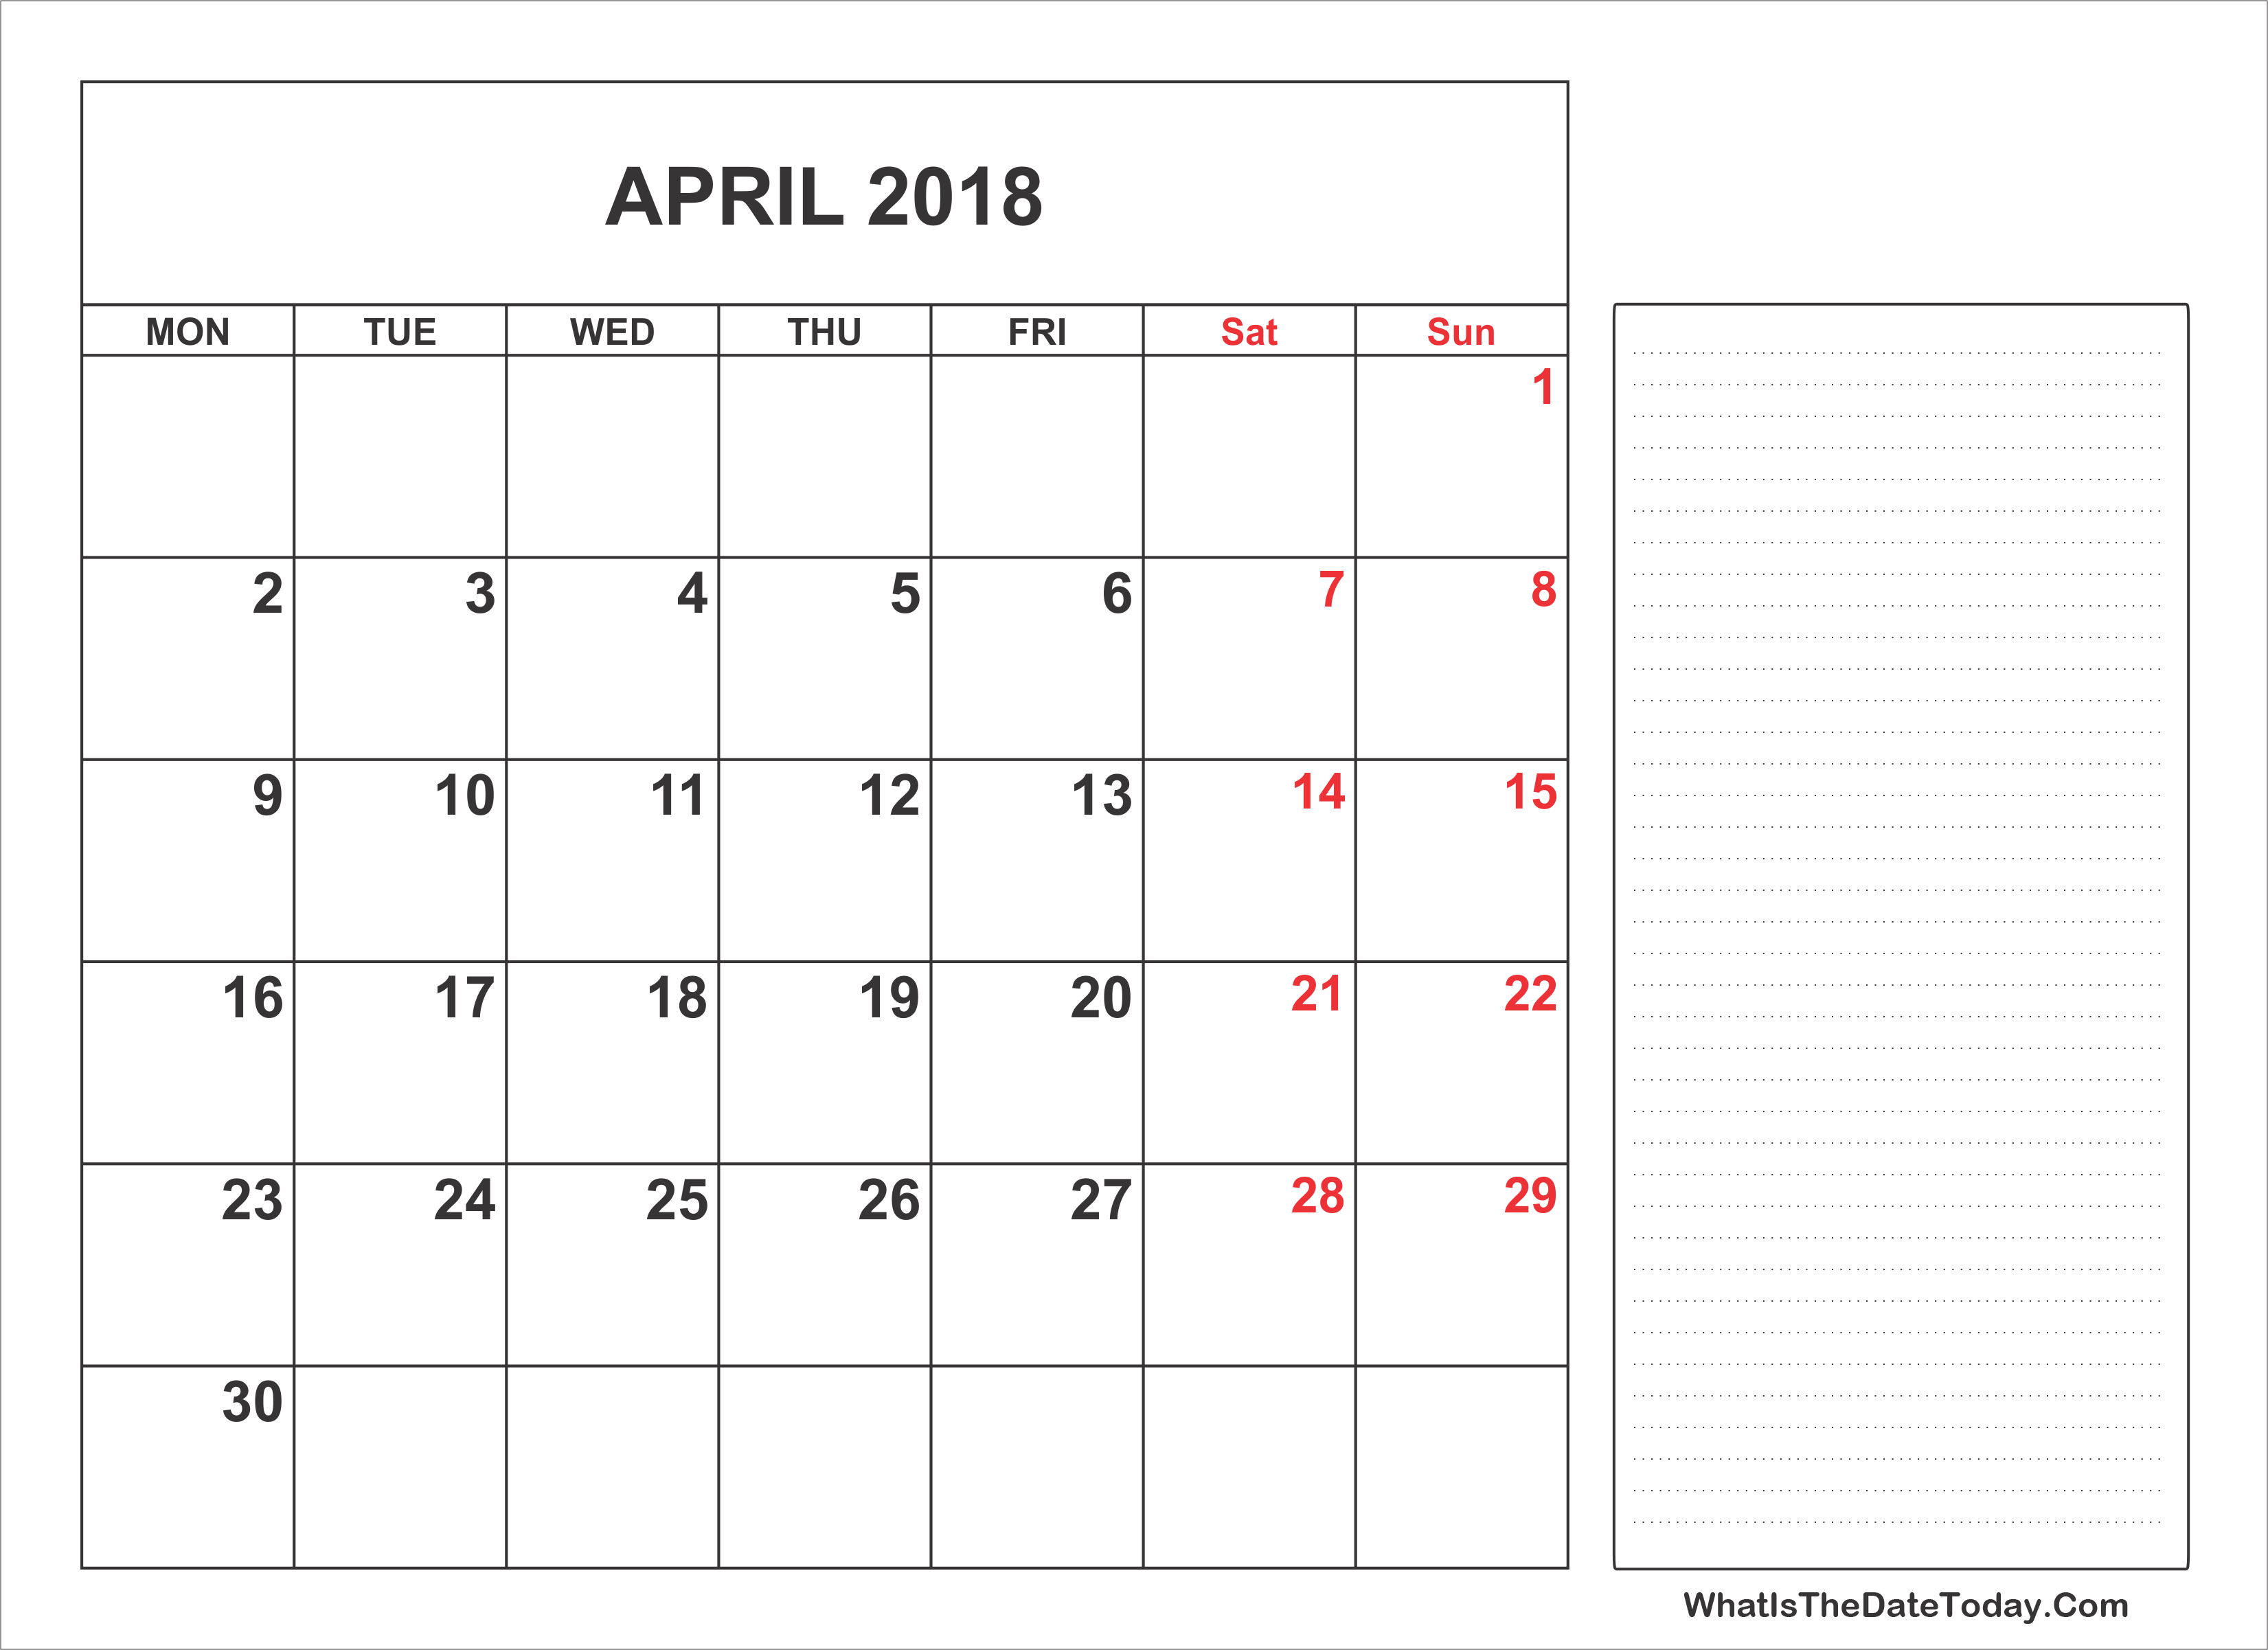 April 2018 Calendar Templates Whatisthedatetoday Com